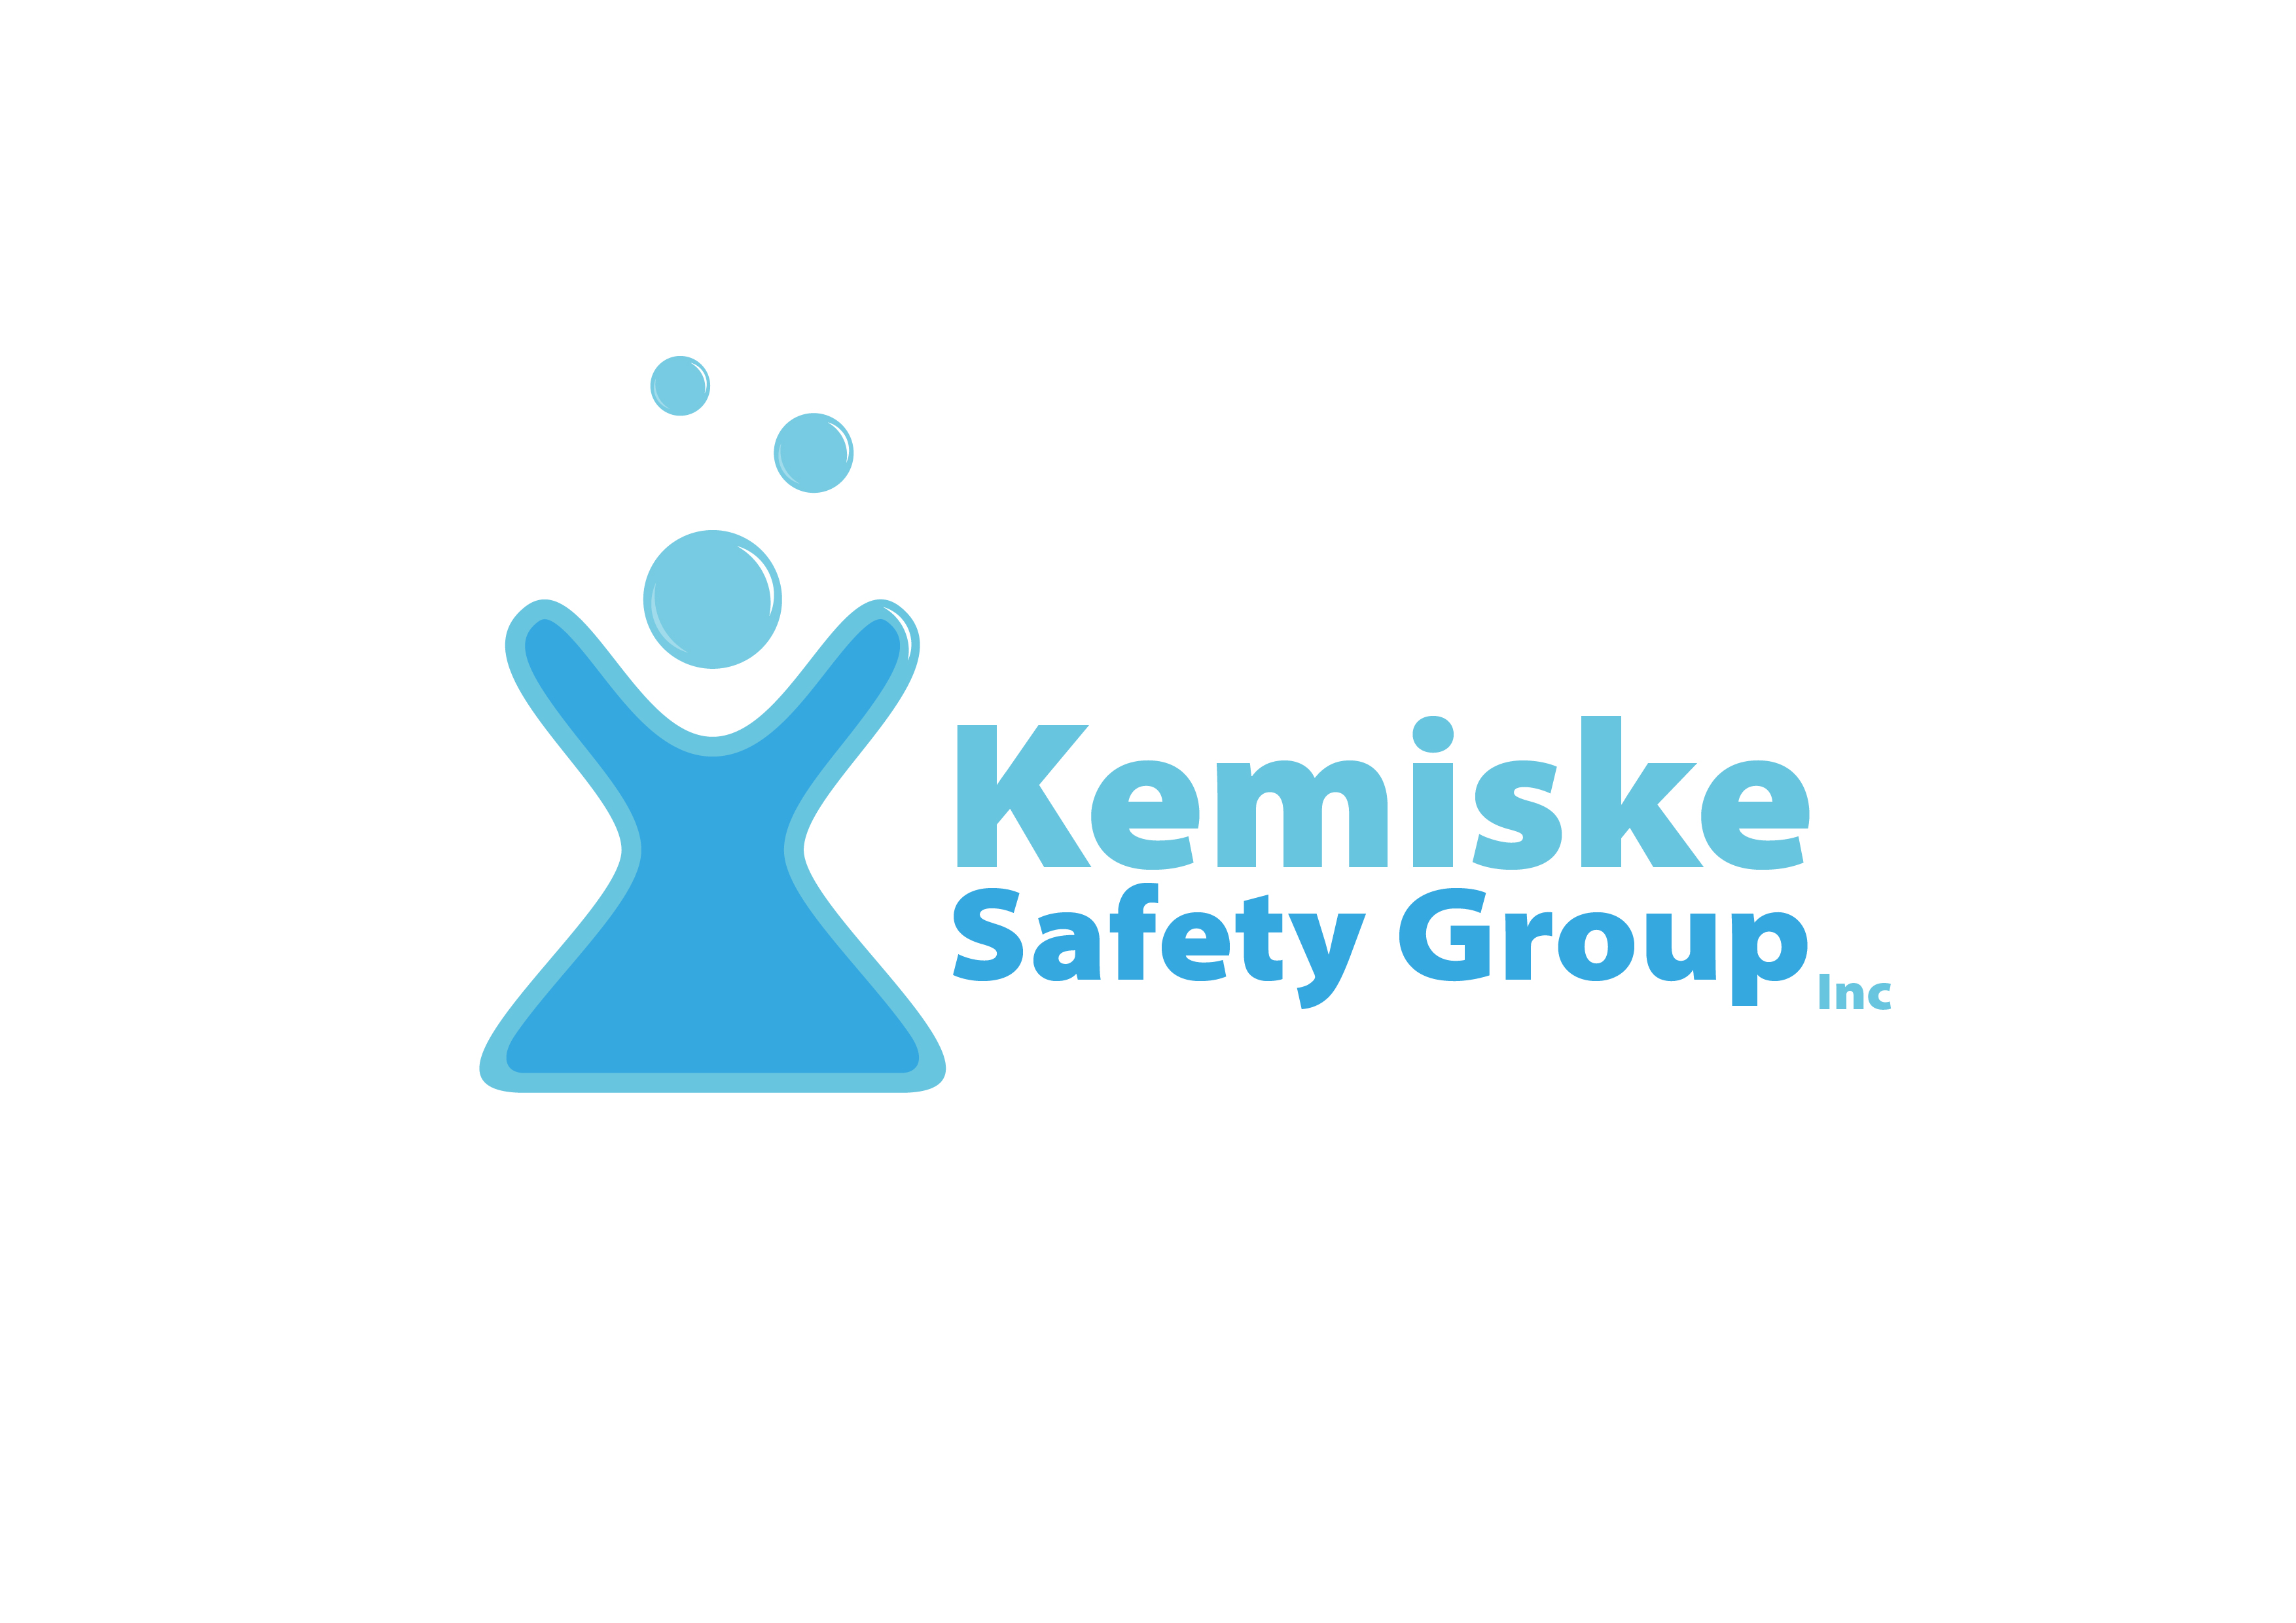 Logo Design by 3draw - Entry No. 154 in the Logo Design Contest New Logo Design for Kemiske Safety Group Inc..